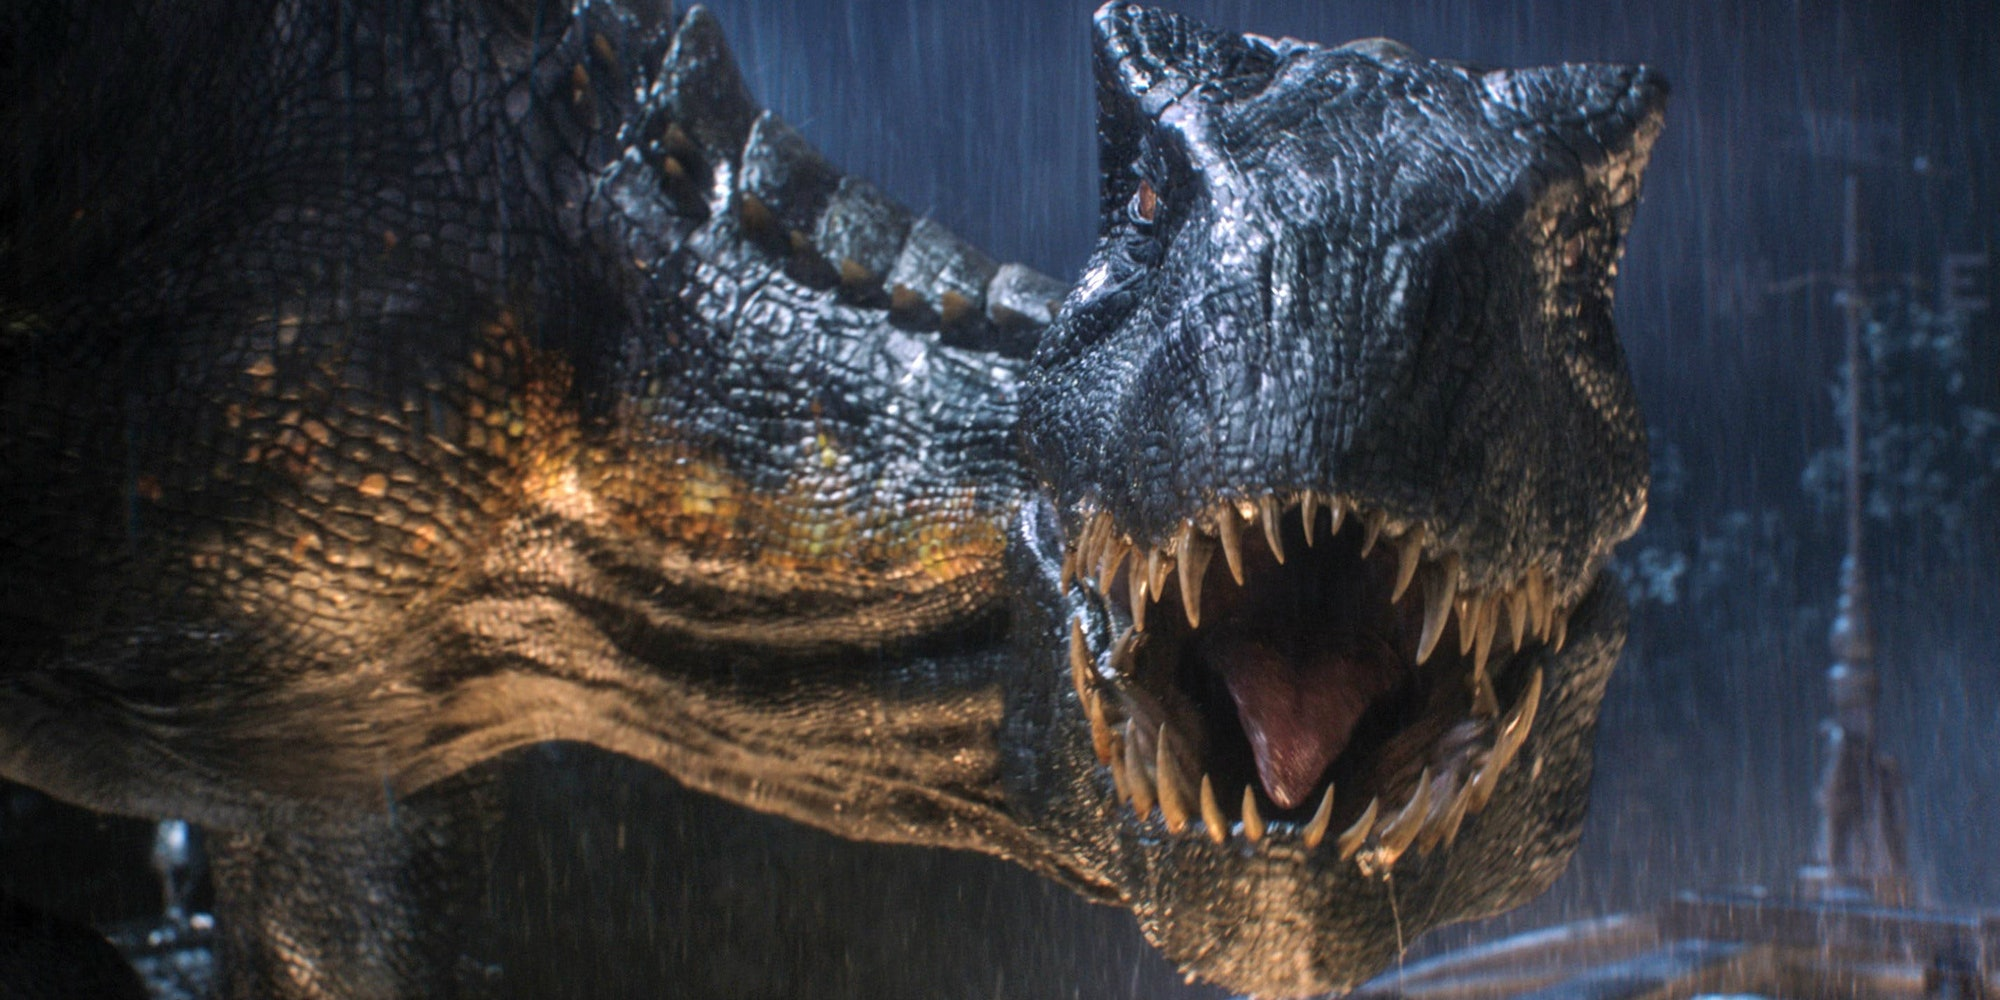 The new hybrid monstrosity that gets cooked up for 'Jurassic World: Fallen Kingdom'.